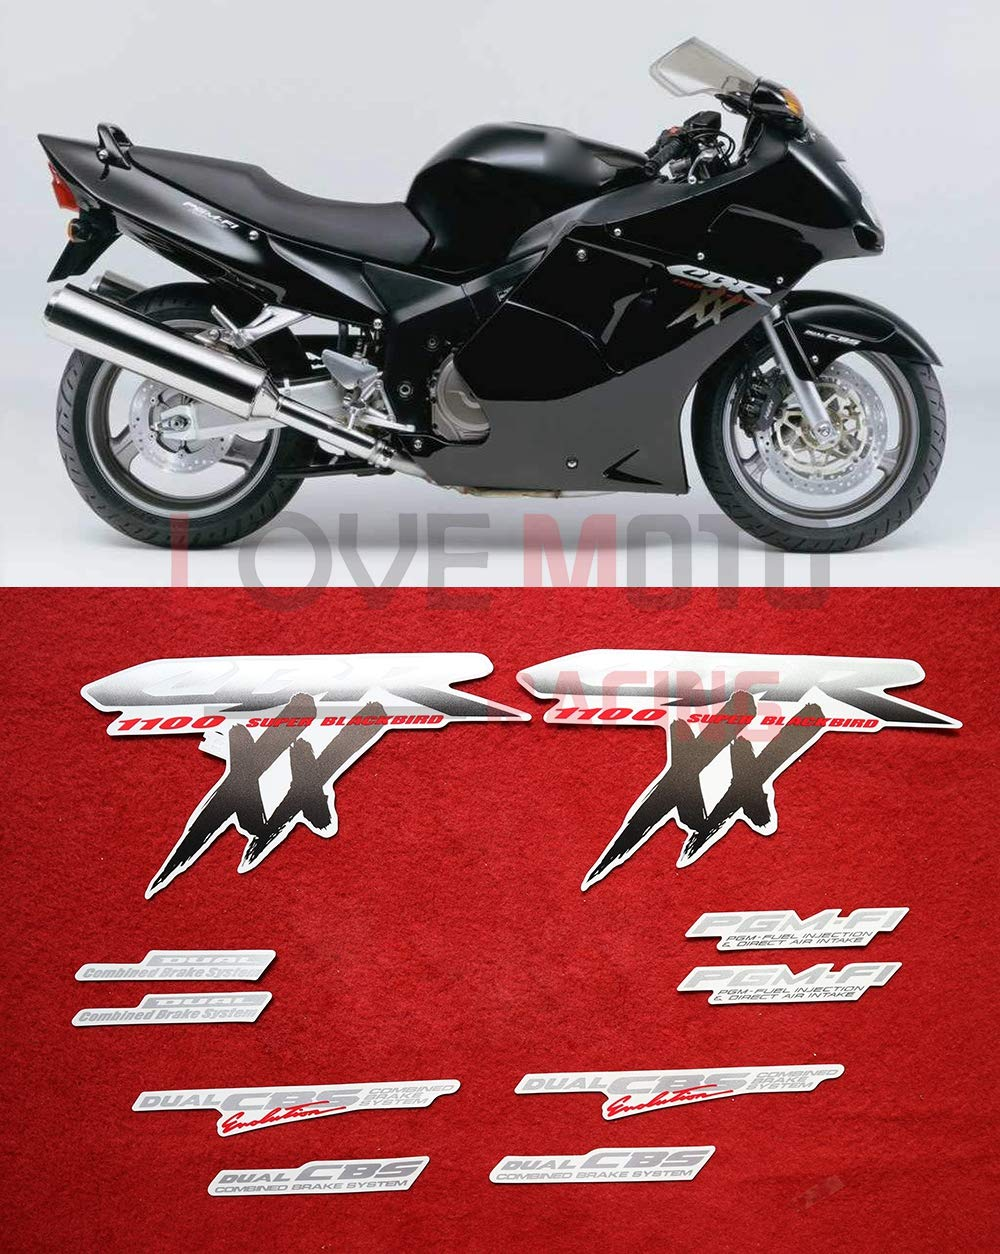 Black LoveMoto Whole Vehicle Decals Stickers for 1996-2007 CBR1100XX F5 honda 96-07 Motorcycle Full kit Decals